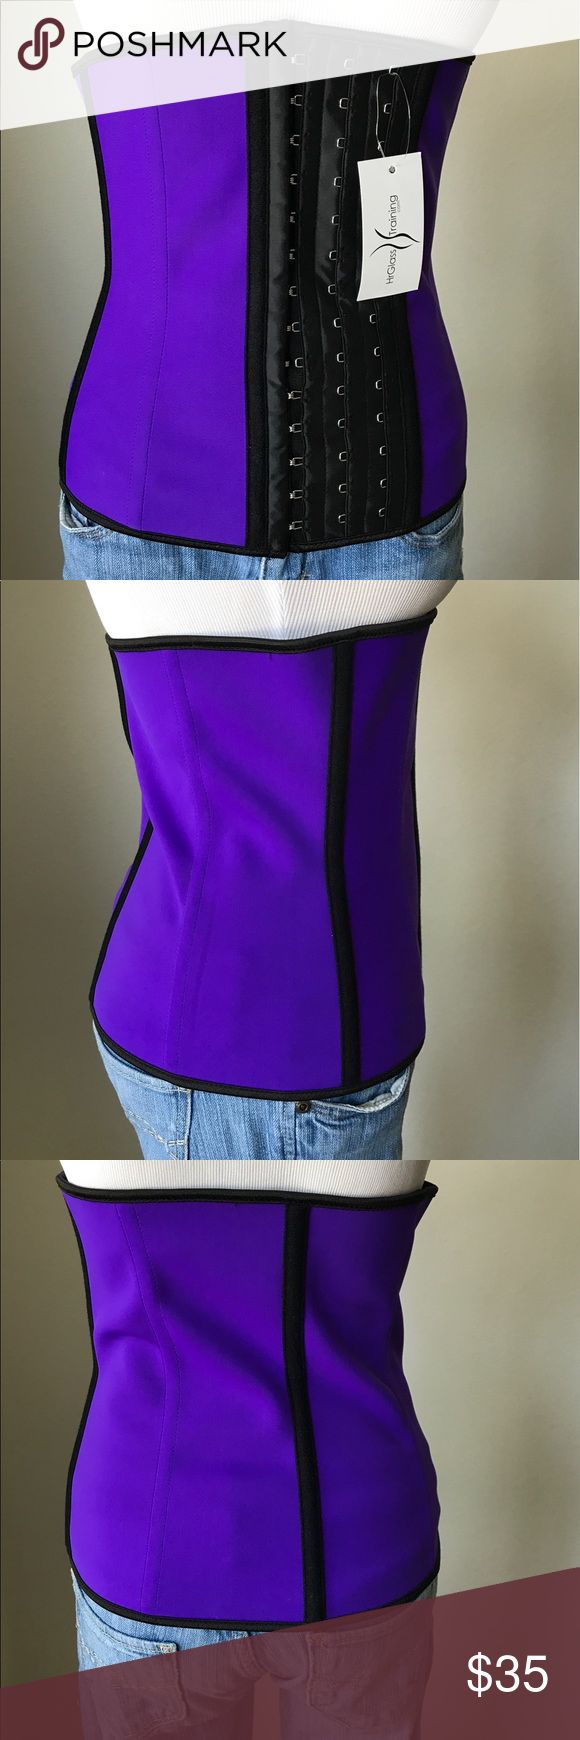 HrGlass Training Best Waist Trainer Corset Purchased this and it didn't fit and I could not return. Purple waist trainer 96% Cotton/4% Spandex/Core: 100% latex. Steel boned and has three hooks to adjust sizing.  Sizing is in last photo. Intimates & Sleepwear Shapewear